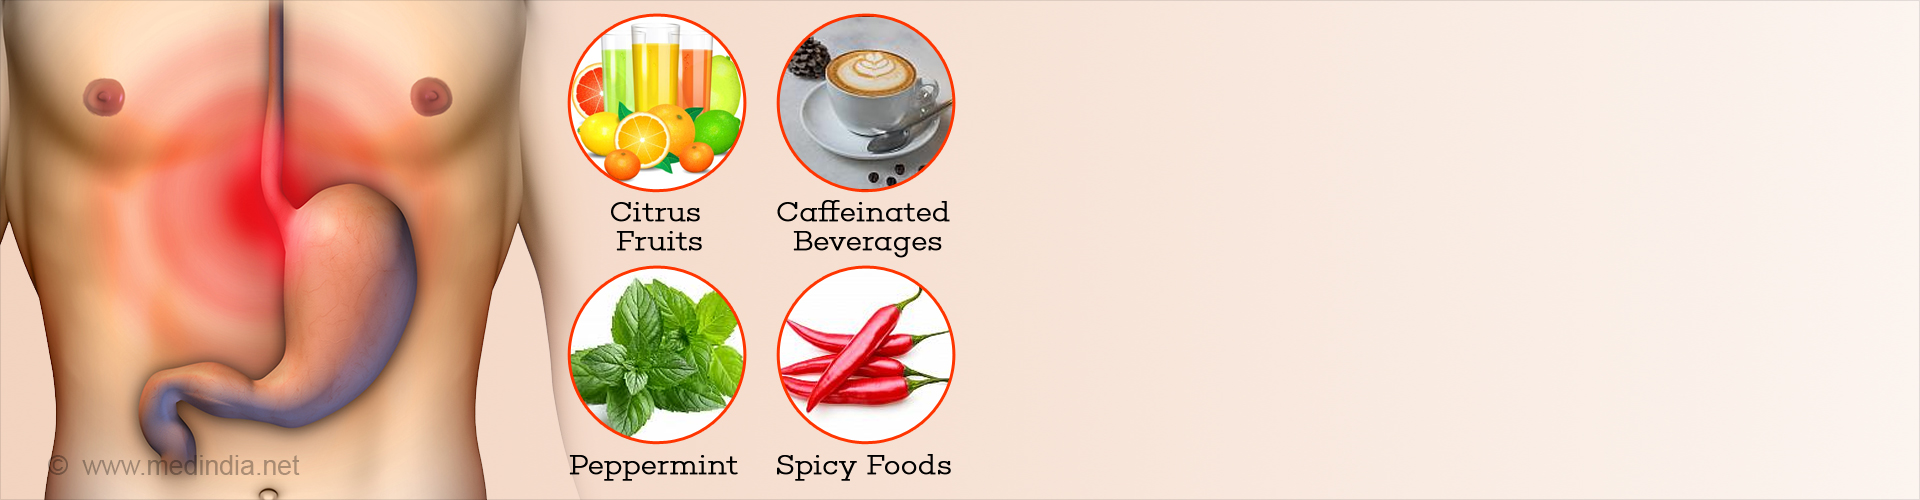 Foods to Avoid to Keep Acid Reflux At Bay